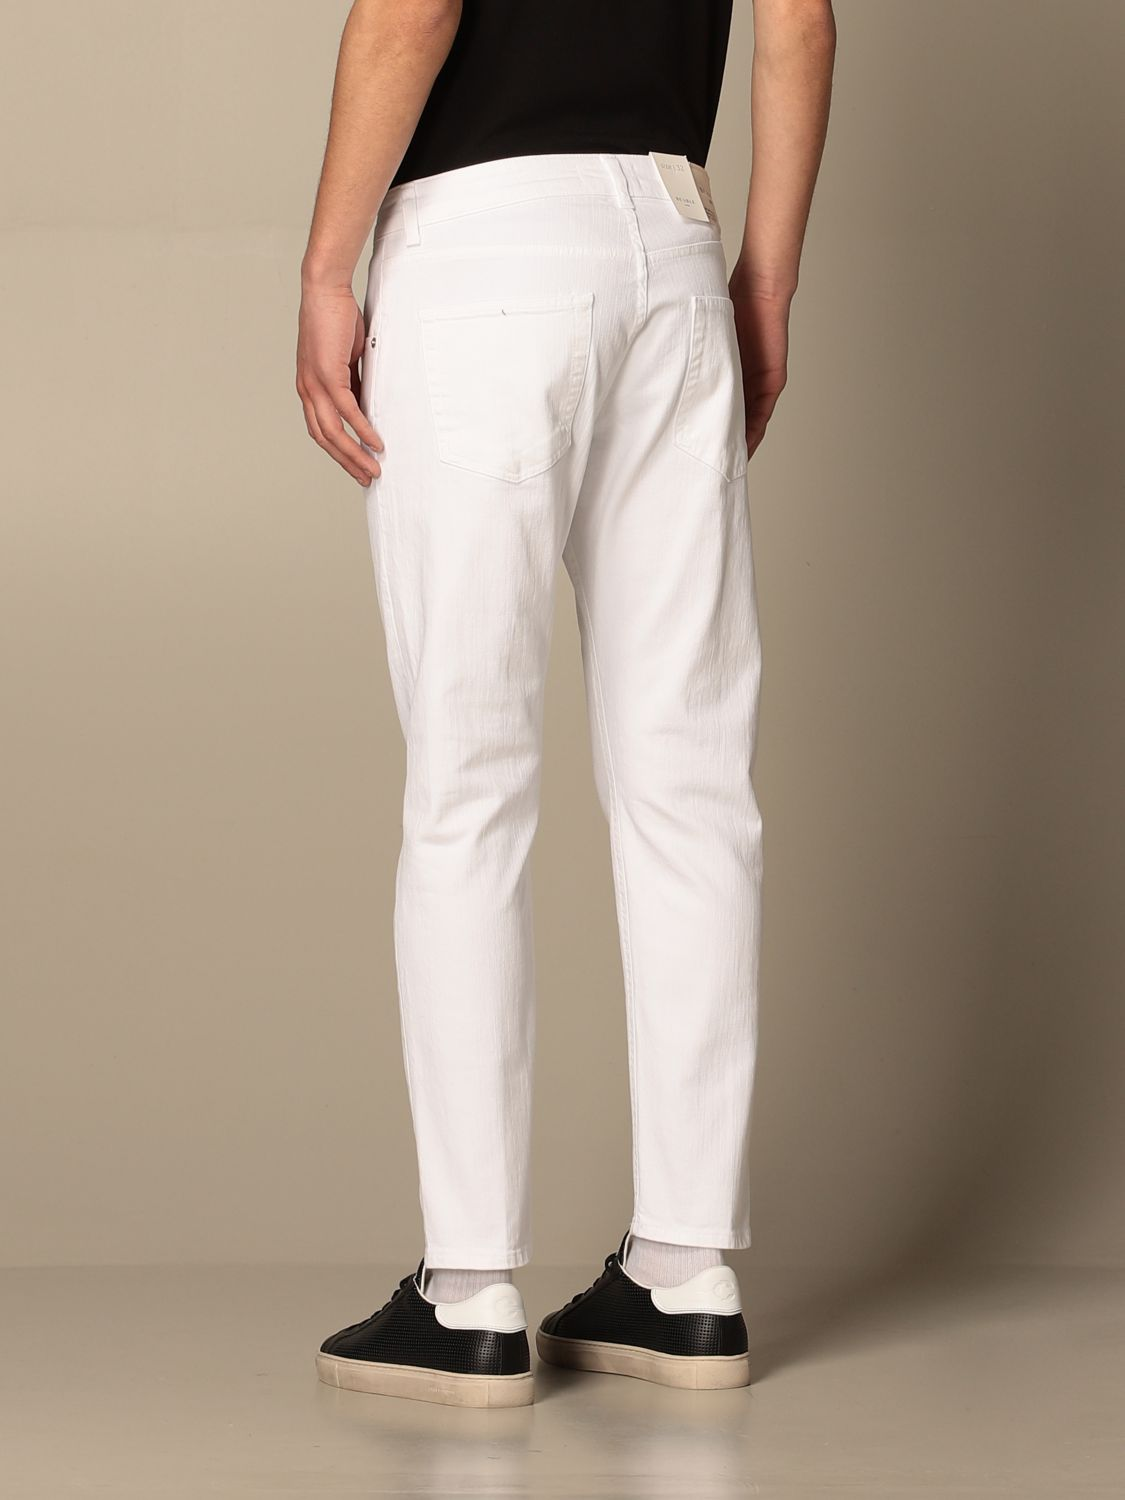 Pantalone Be Able: Pantalone a 5 tasche Be Able in cotone stretch bianco 2